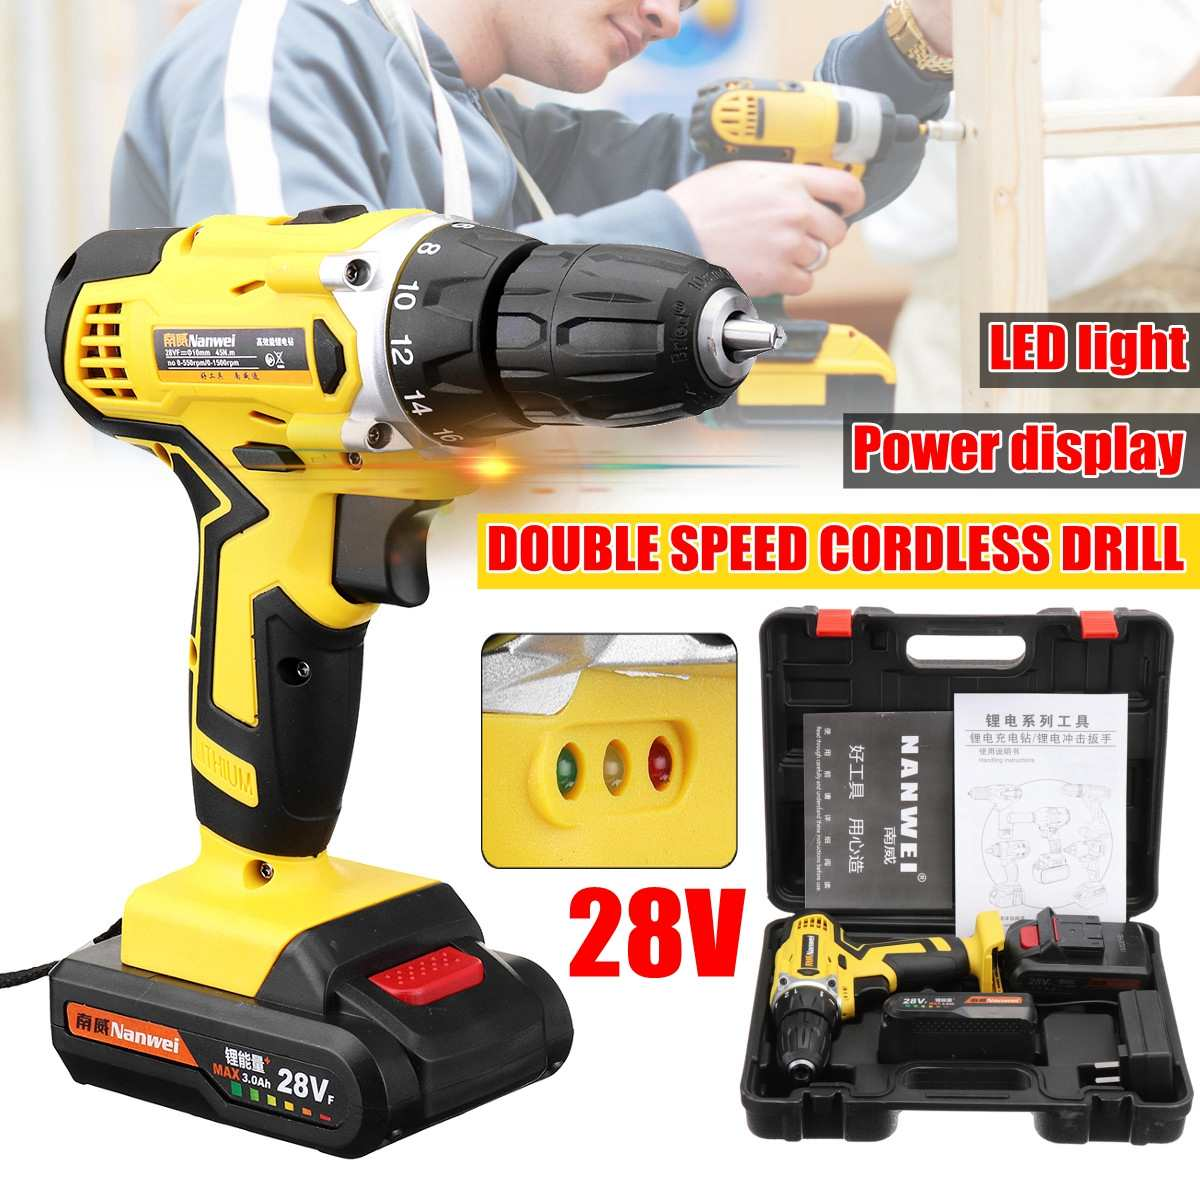 28V Electric Cordless Drill Driver Screwdriver Li-Ion Battery LED Light Battery 1/2-Inch 2-Speed28V Electric Cordless Drill Driver Screwdriver Li-Ion Battery LED Light Battery 1/2-Inch 2-Speed